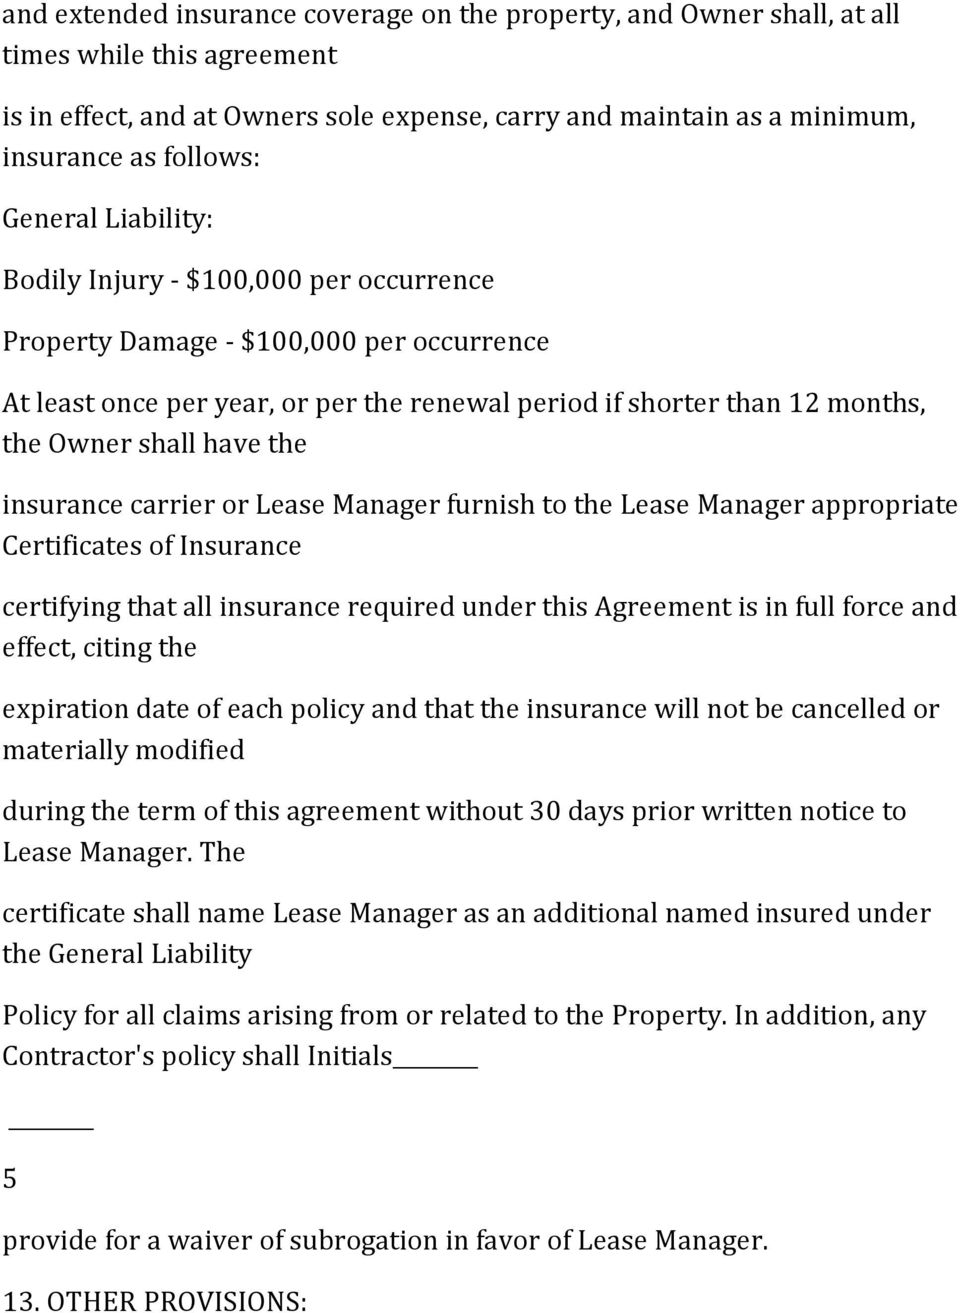 the insurance carrier or Lease Manager furnish to the Lease Manager appropriate Certificates of Insurance certifying that all insurance required under this Agreement is in full force and effect,